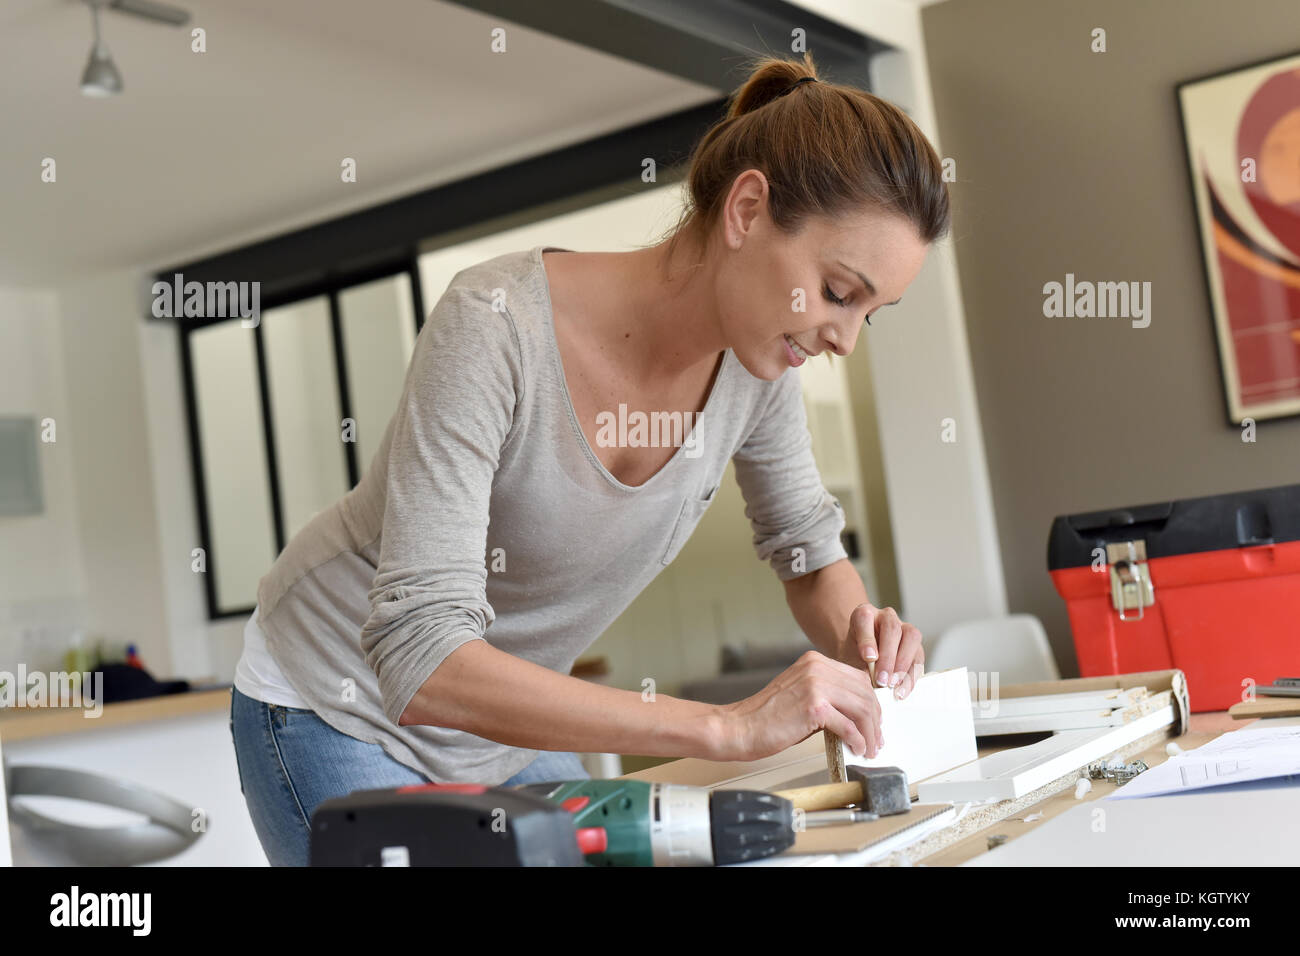 Woman at home assembling new furniture - Stock Image